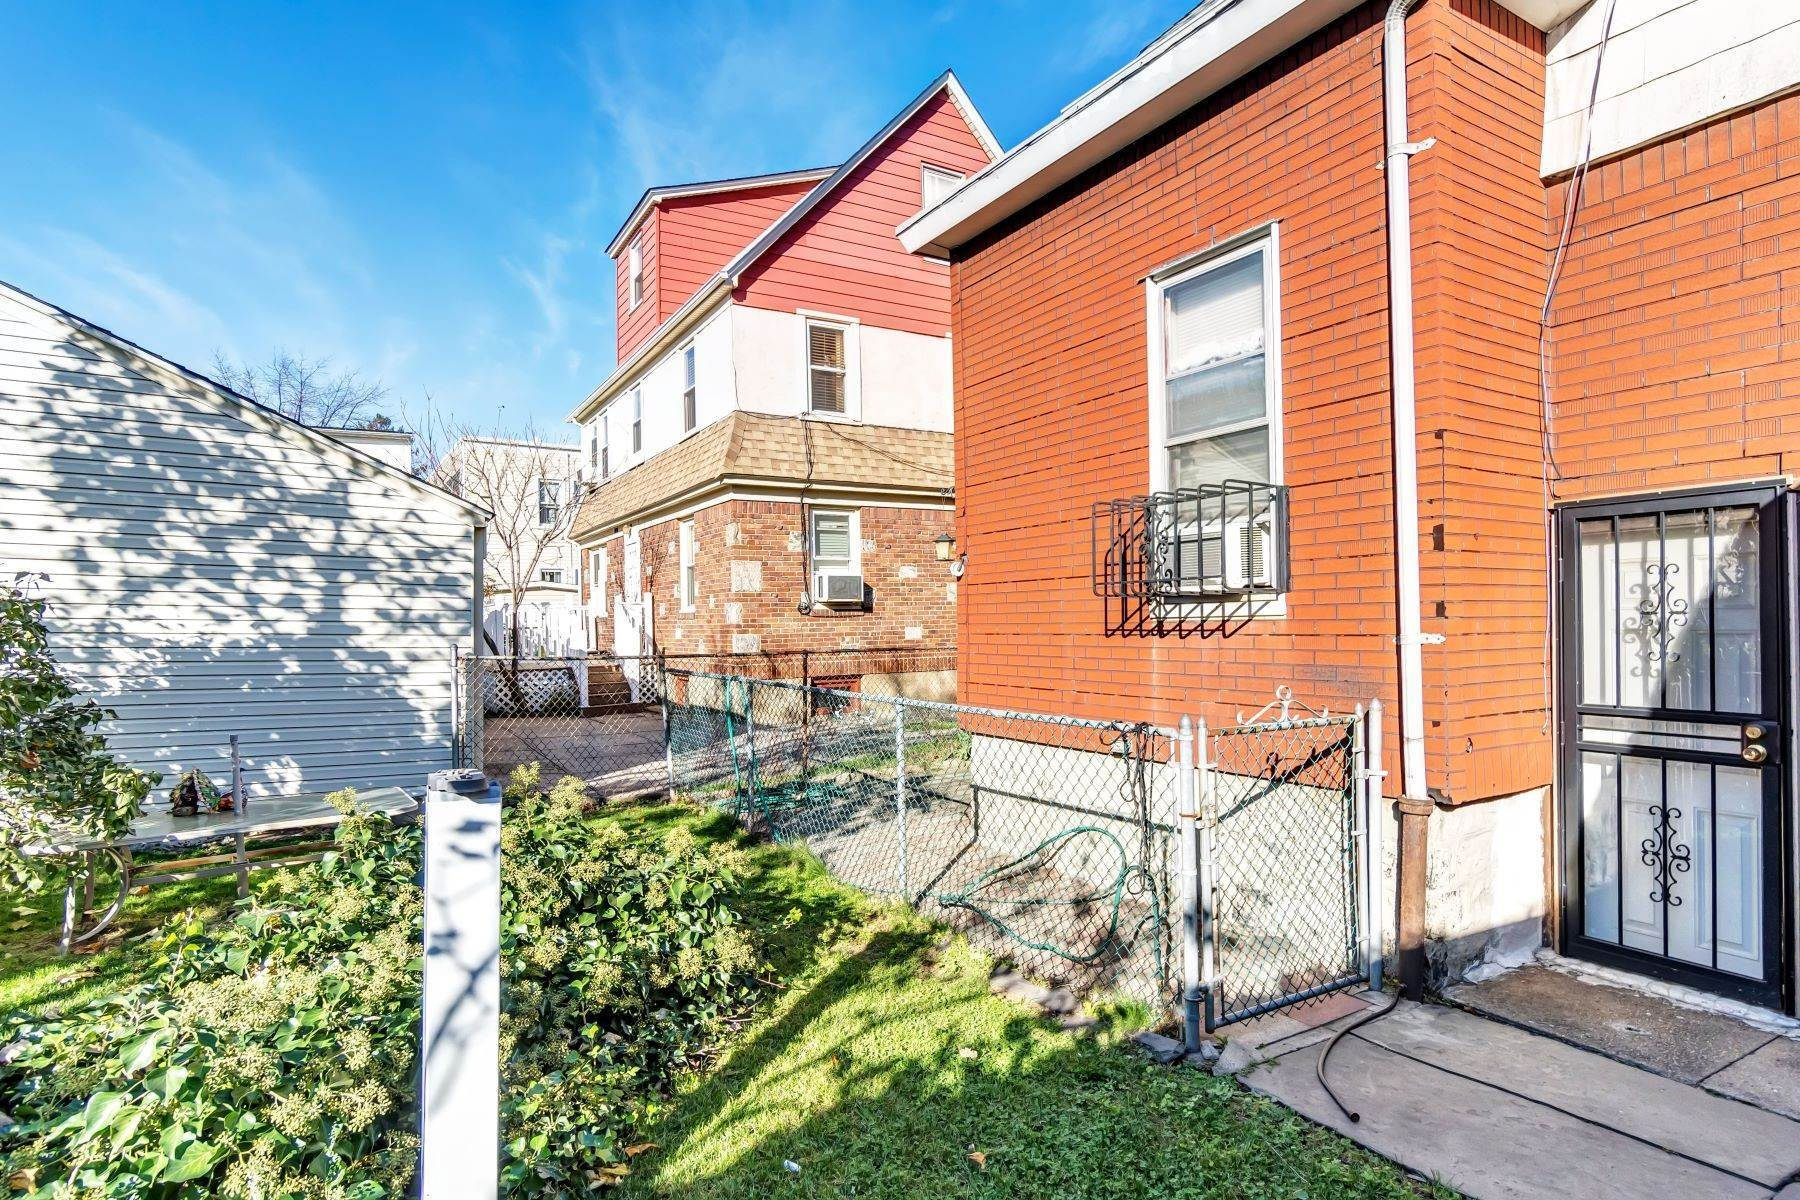 Multi-Family Homes for Sale at 95-18 113th St, Richmond Hill, Ny, 11419 95-18 113th Street Richmond Hill, New York 11419 United States